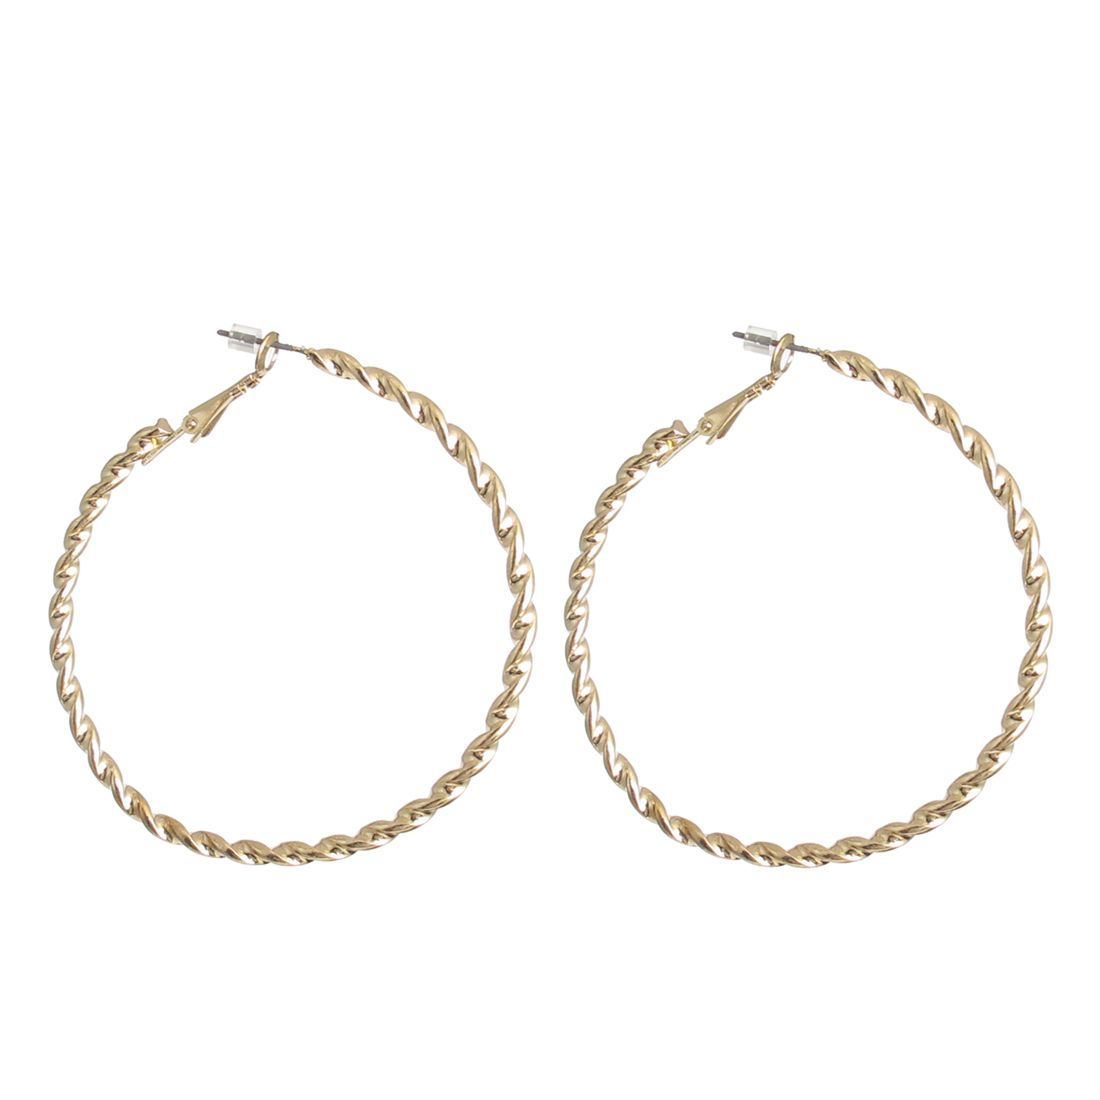 "2.3"" Dia Gold Tone Metal Elegant Stylish Narrow Edge Textured Hoop Pierced Earrings Pair for Lady Women"